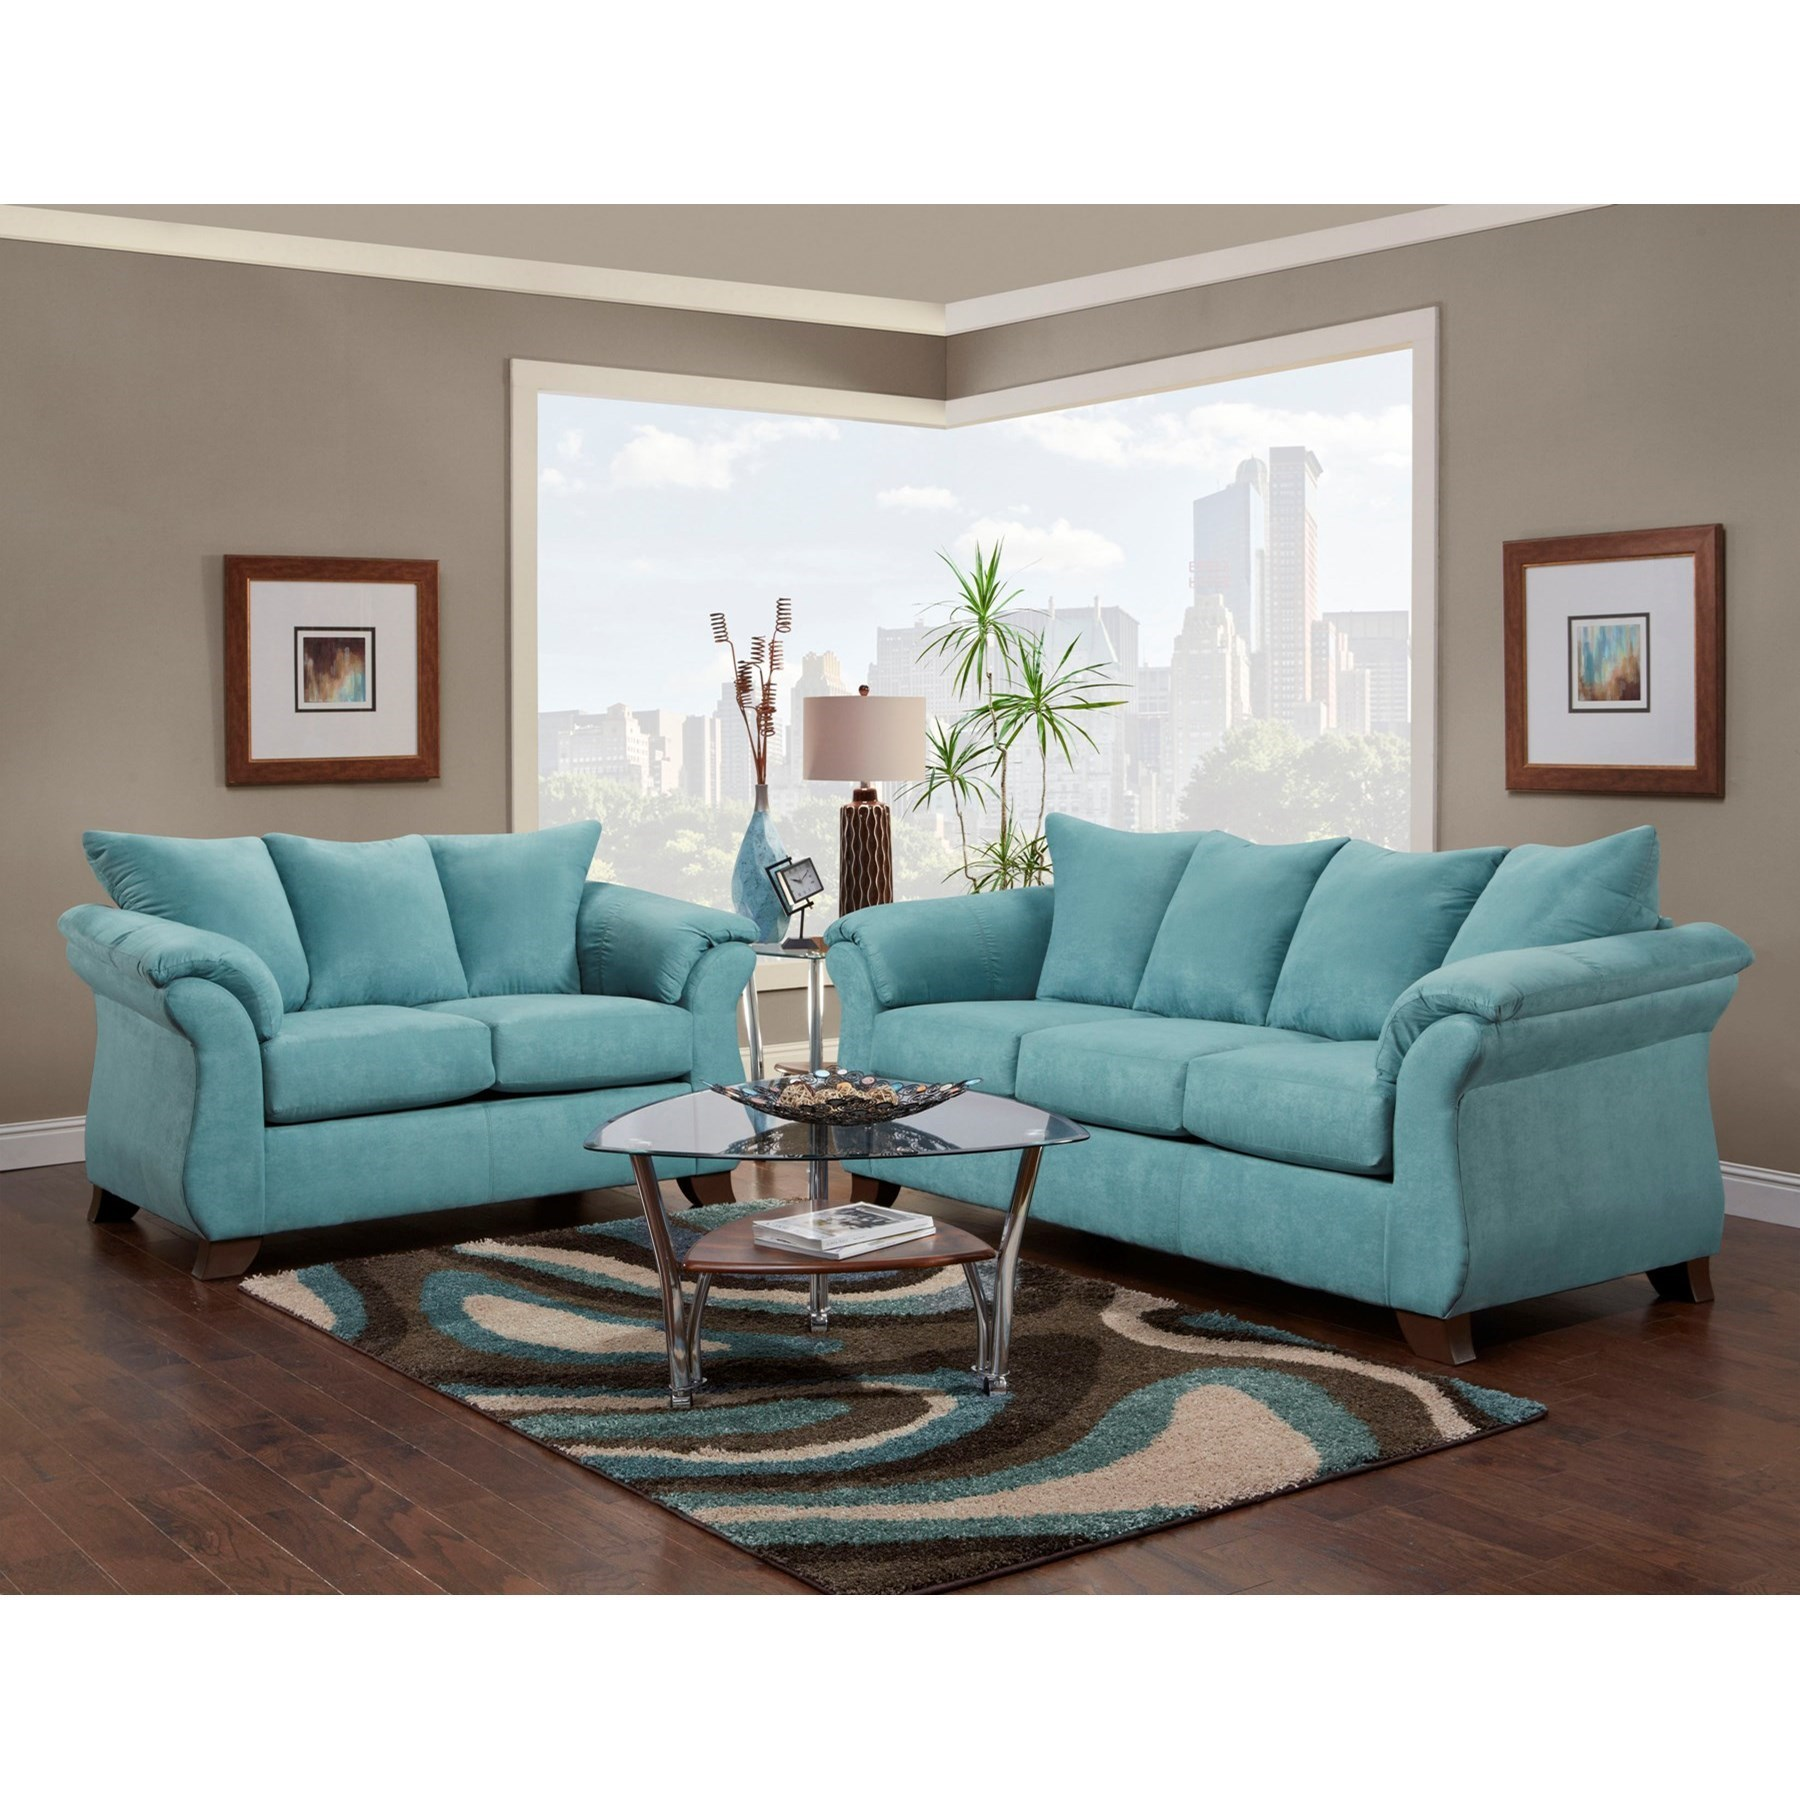 Affordable Furniture 6700Queen Sleeper Sofa; Affordable Furniture 6700Queen Sleeper  Sofa